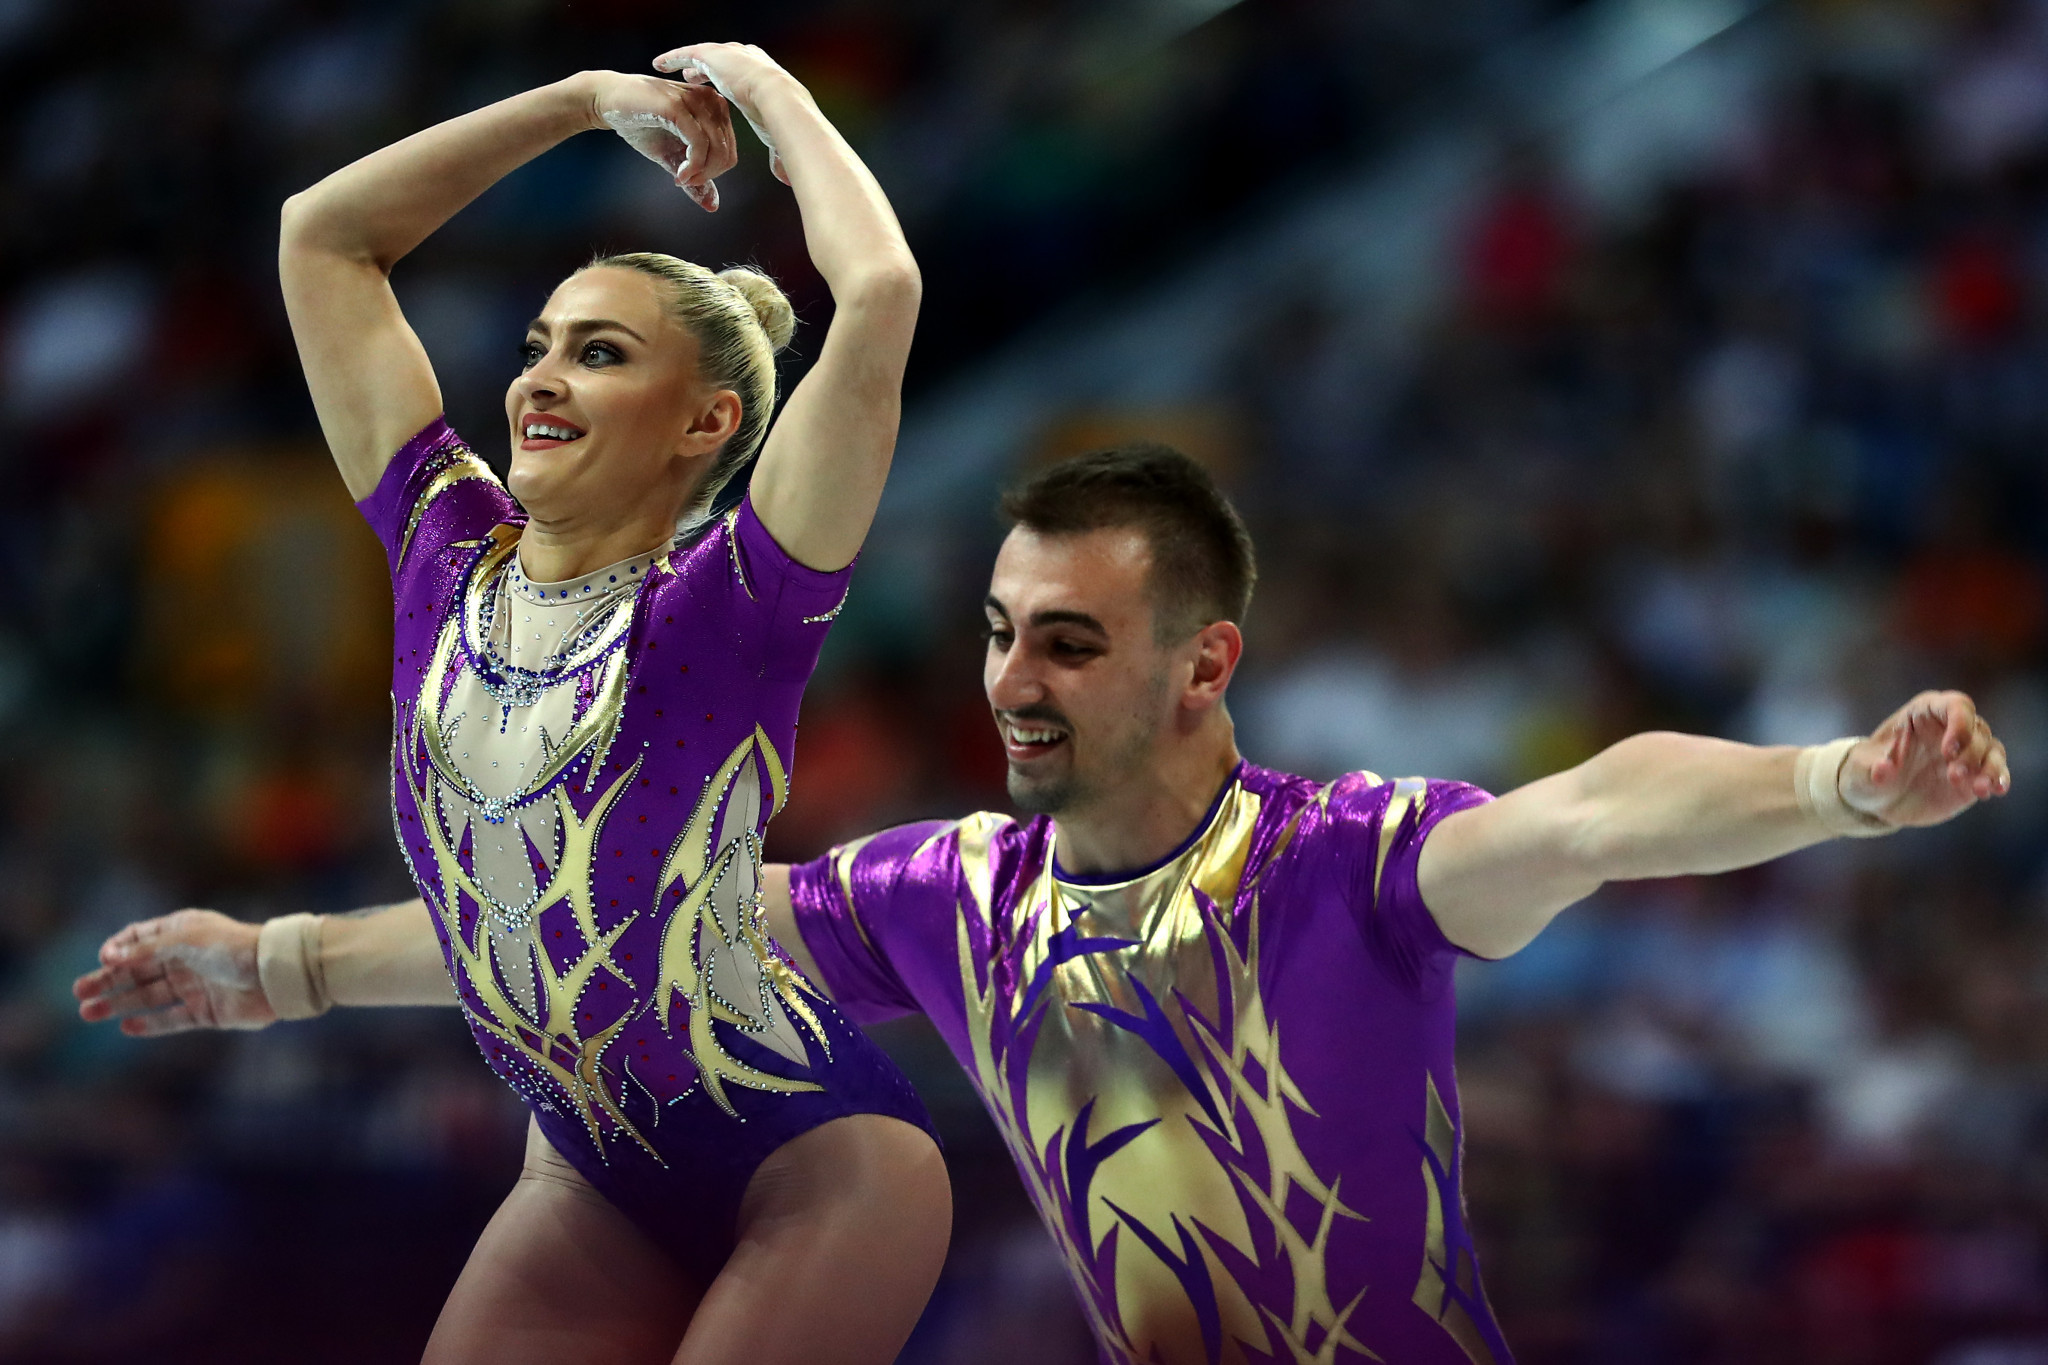 Finishing just behind them was Romania's Dacian Nicolae Barna and Andreea Bogati ©Getty Images